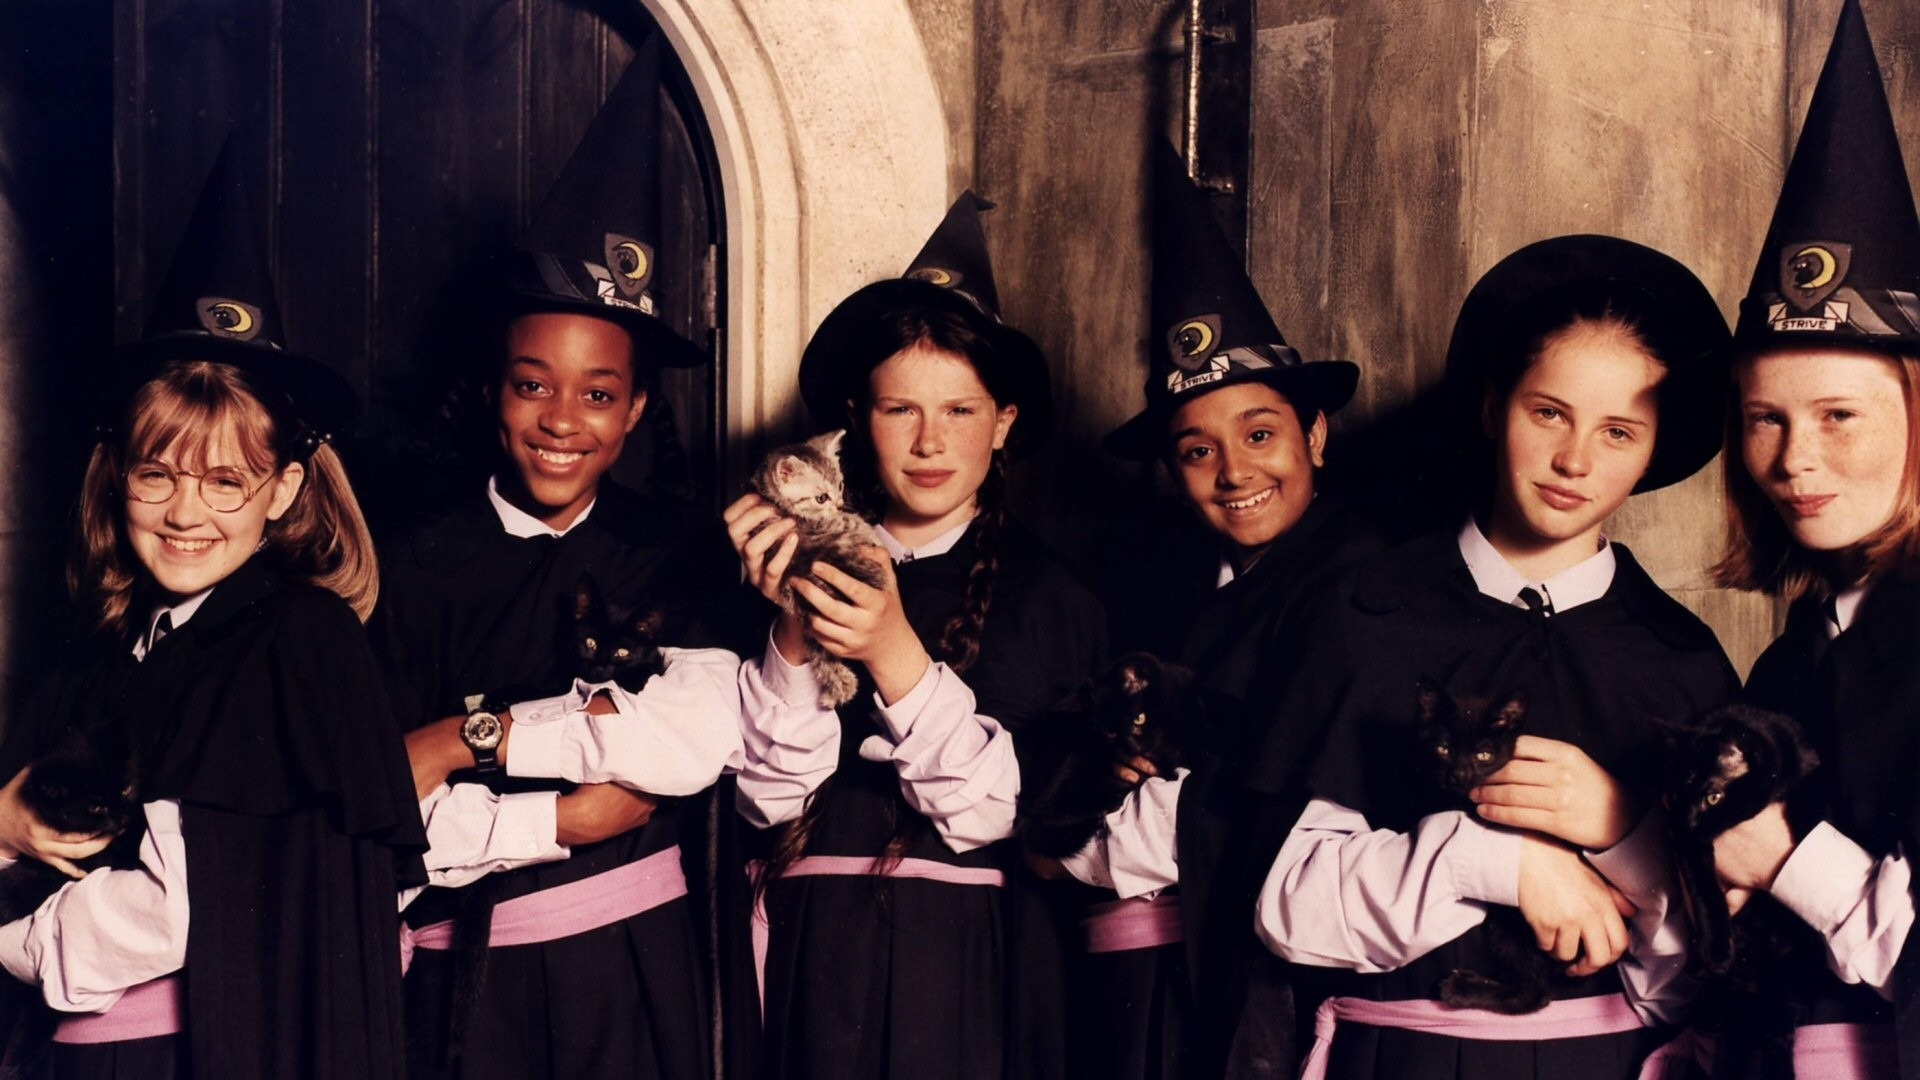 Show The Worst Witch